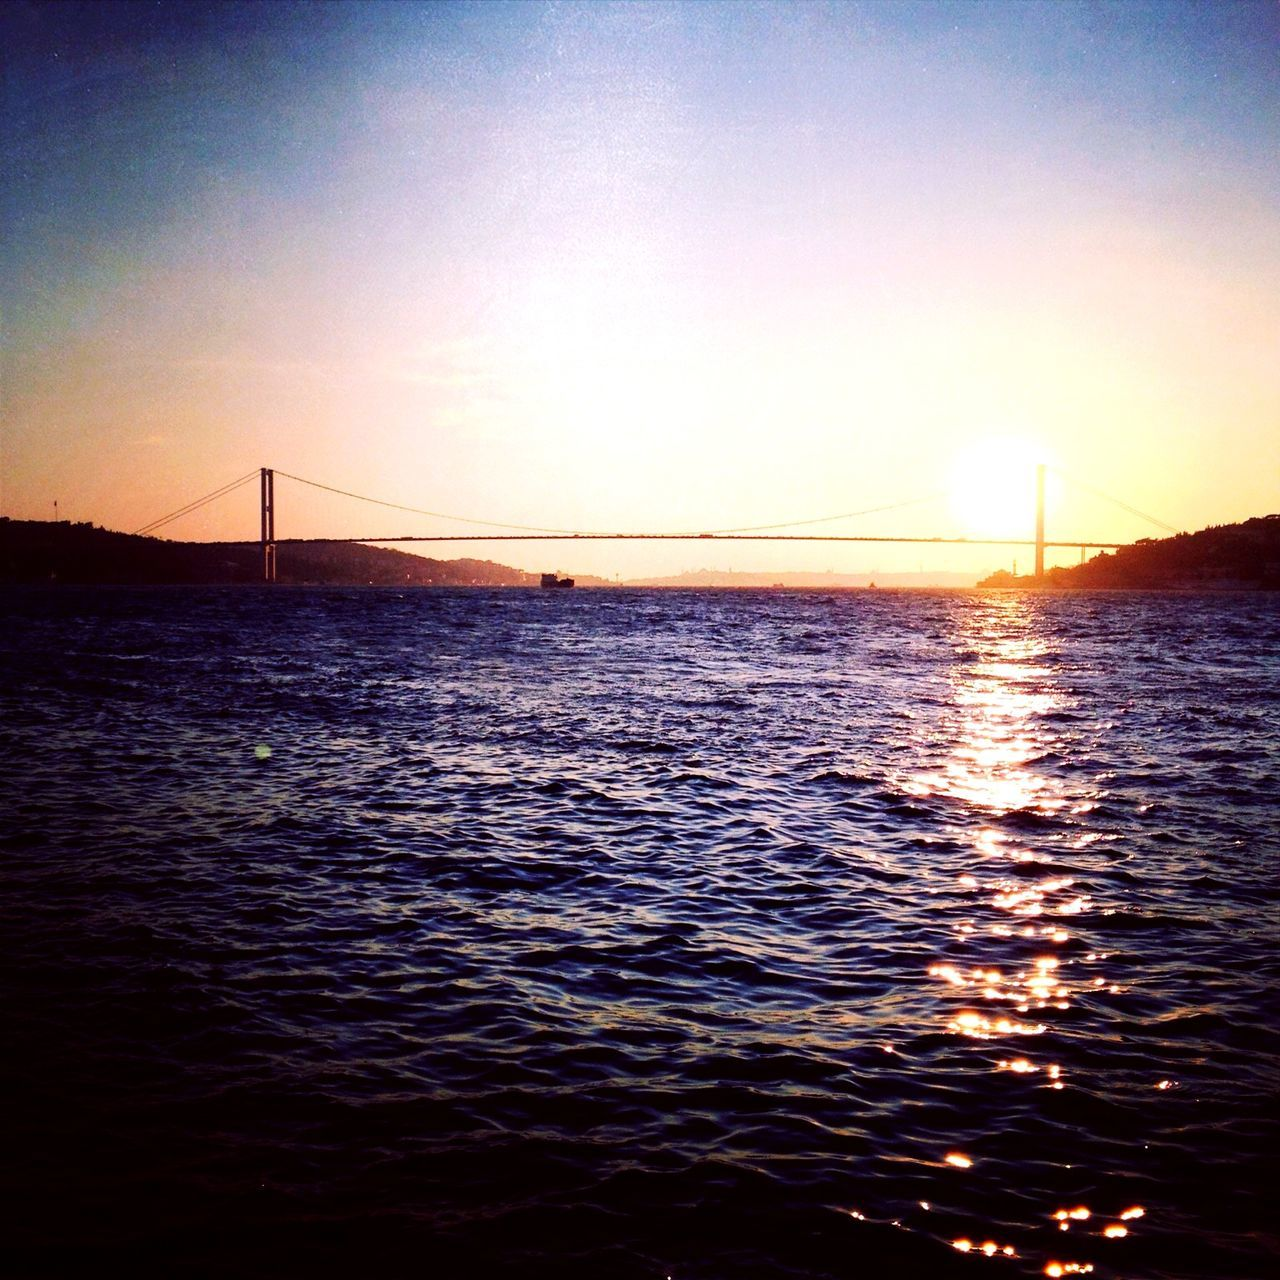 water, sky, bridge, connection, bridge - man made structure, sunset, built structure, sea, waterfront, transportation, architecture, suspension bridge, no people, nature, silhouette, beauty in nature, scenics - nature, tranquility, outdoors, sun, sailboat, bay